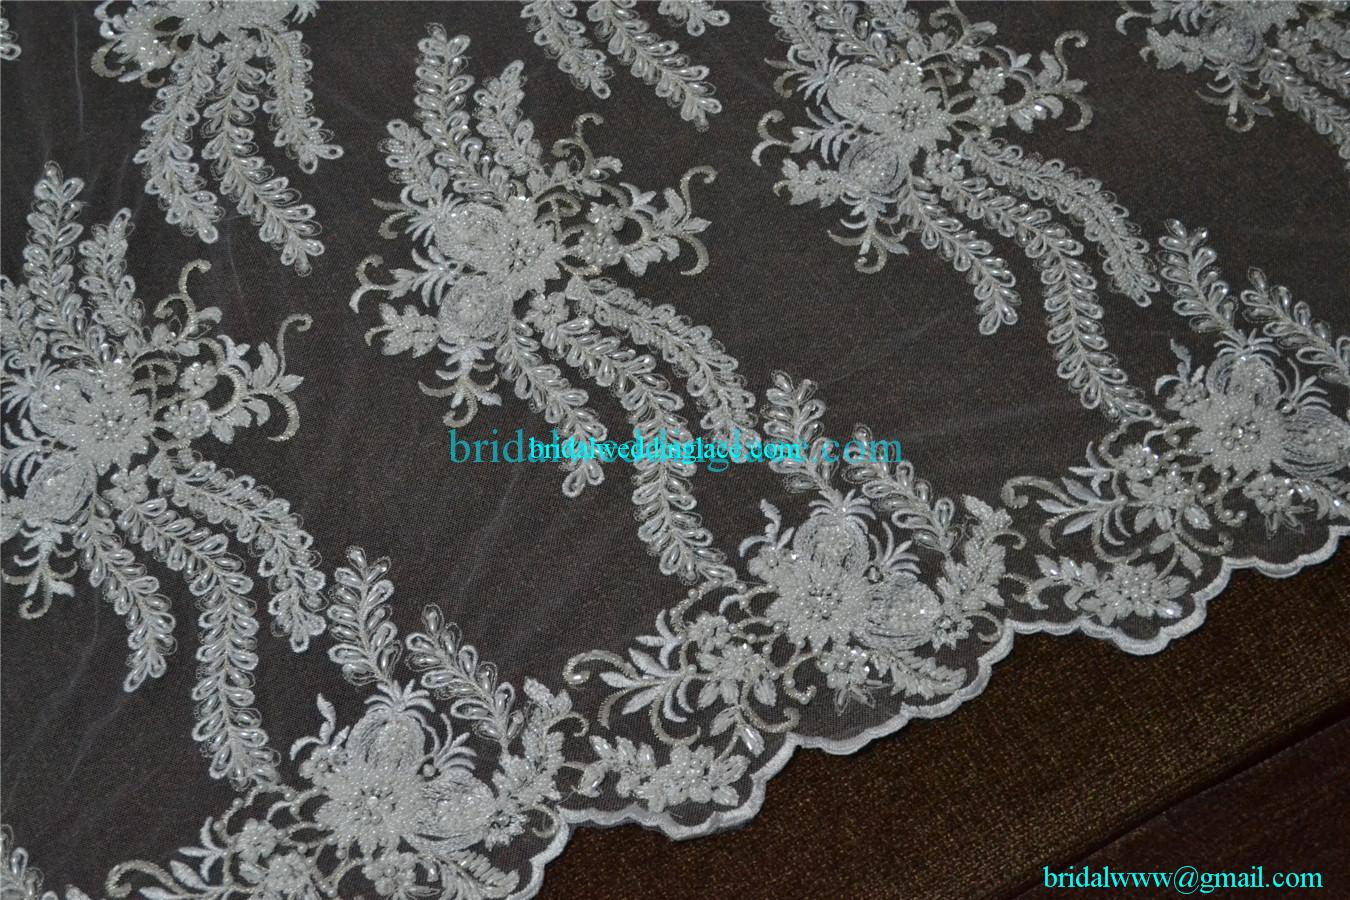 quality exquisite beaded lace fabric bridal wedding white. Black Bedroom Furniture Sets. Home Design Ideas